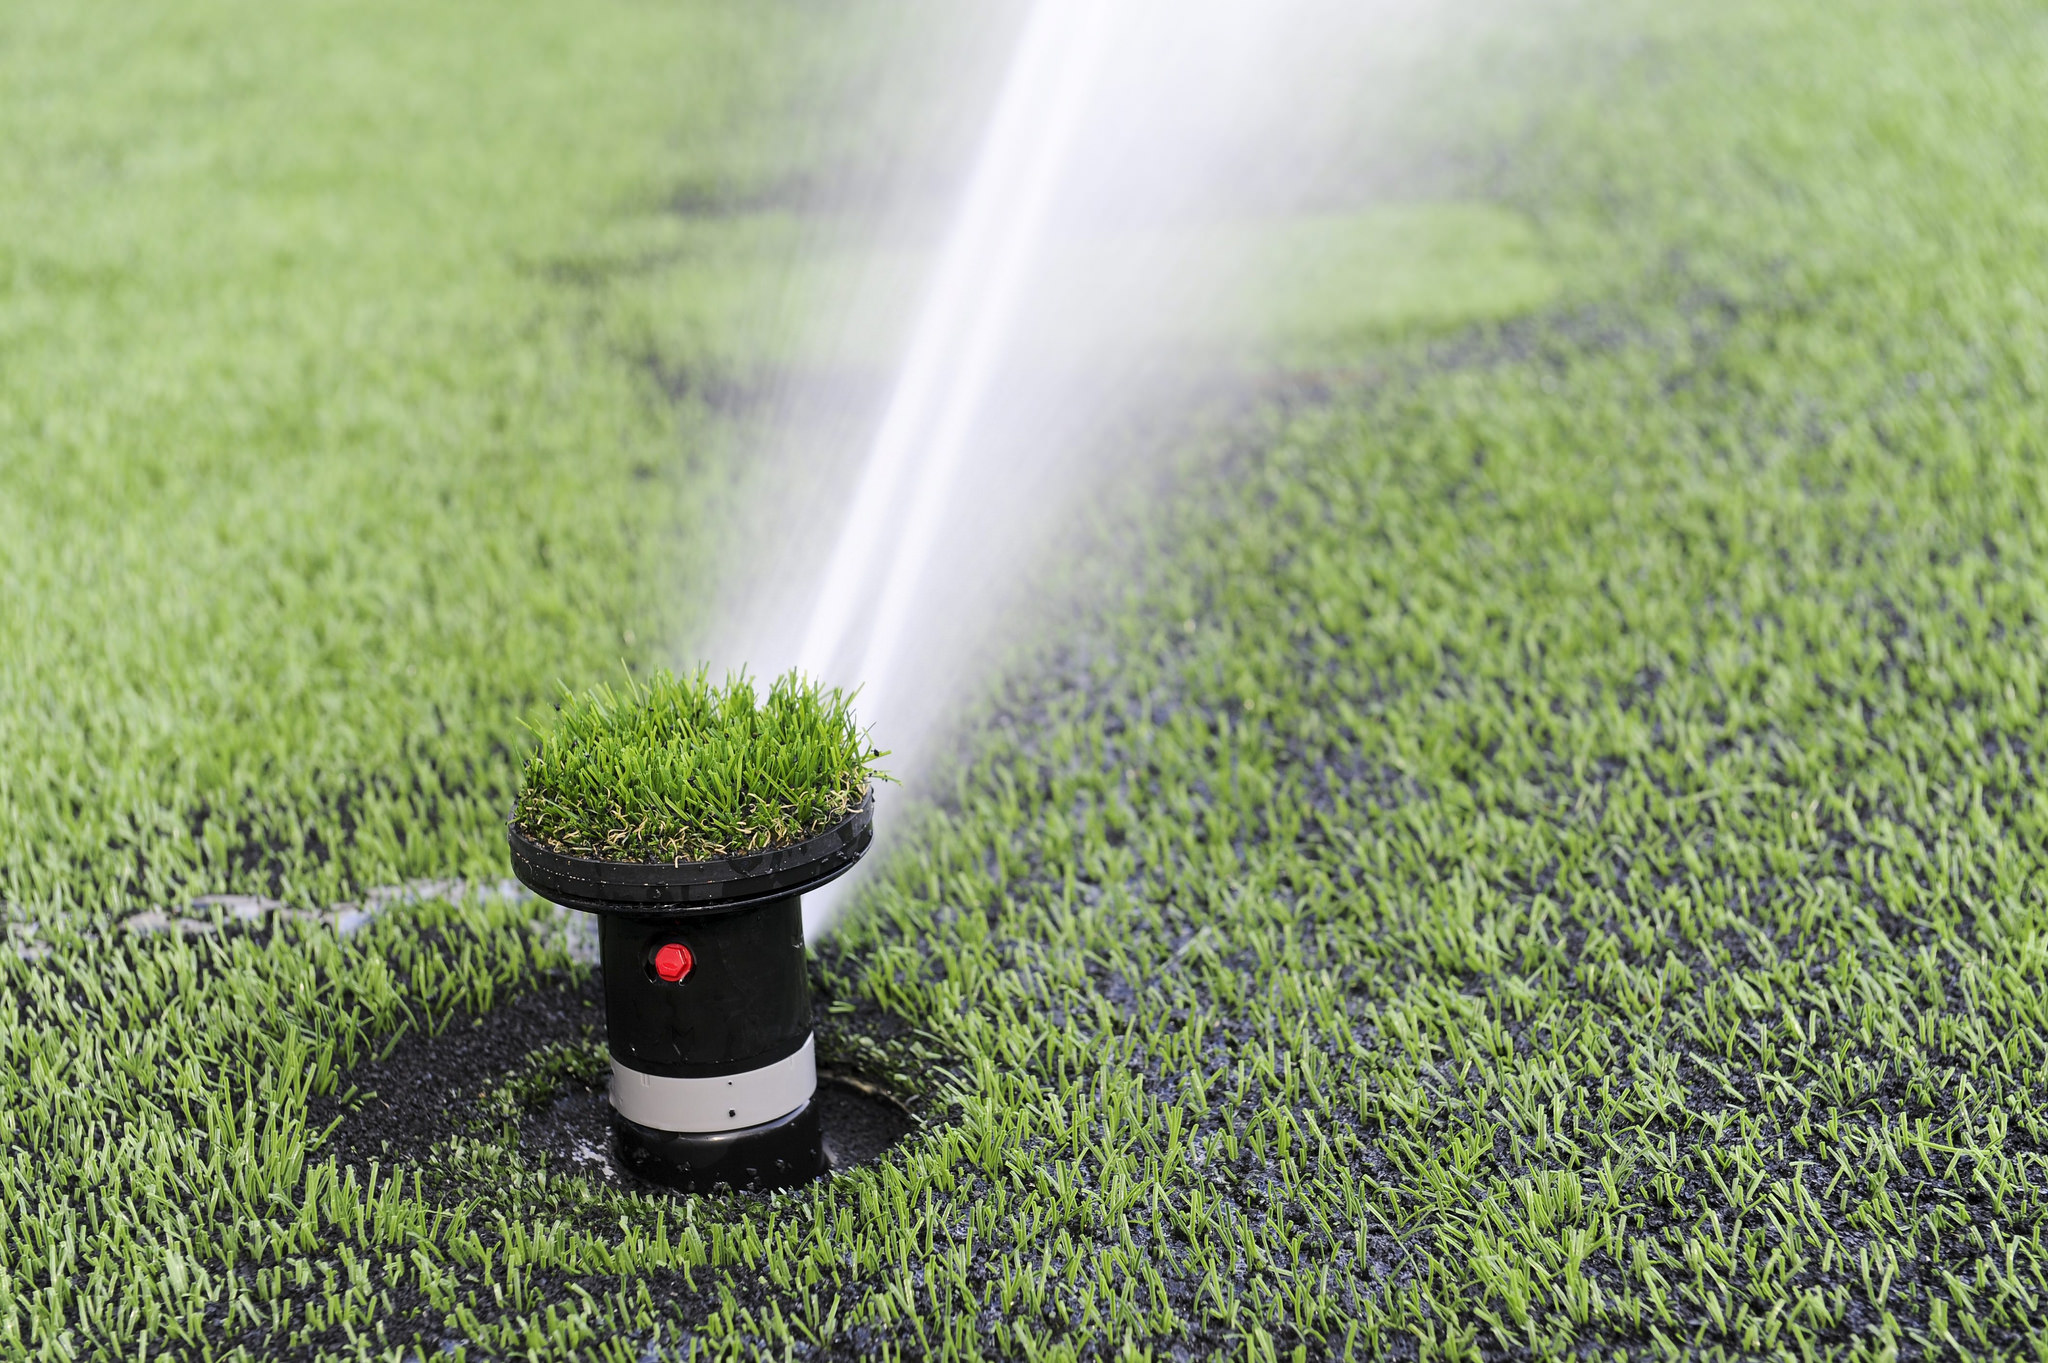 Irrigation system upgrades - True innovation with every renovation